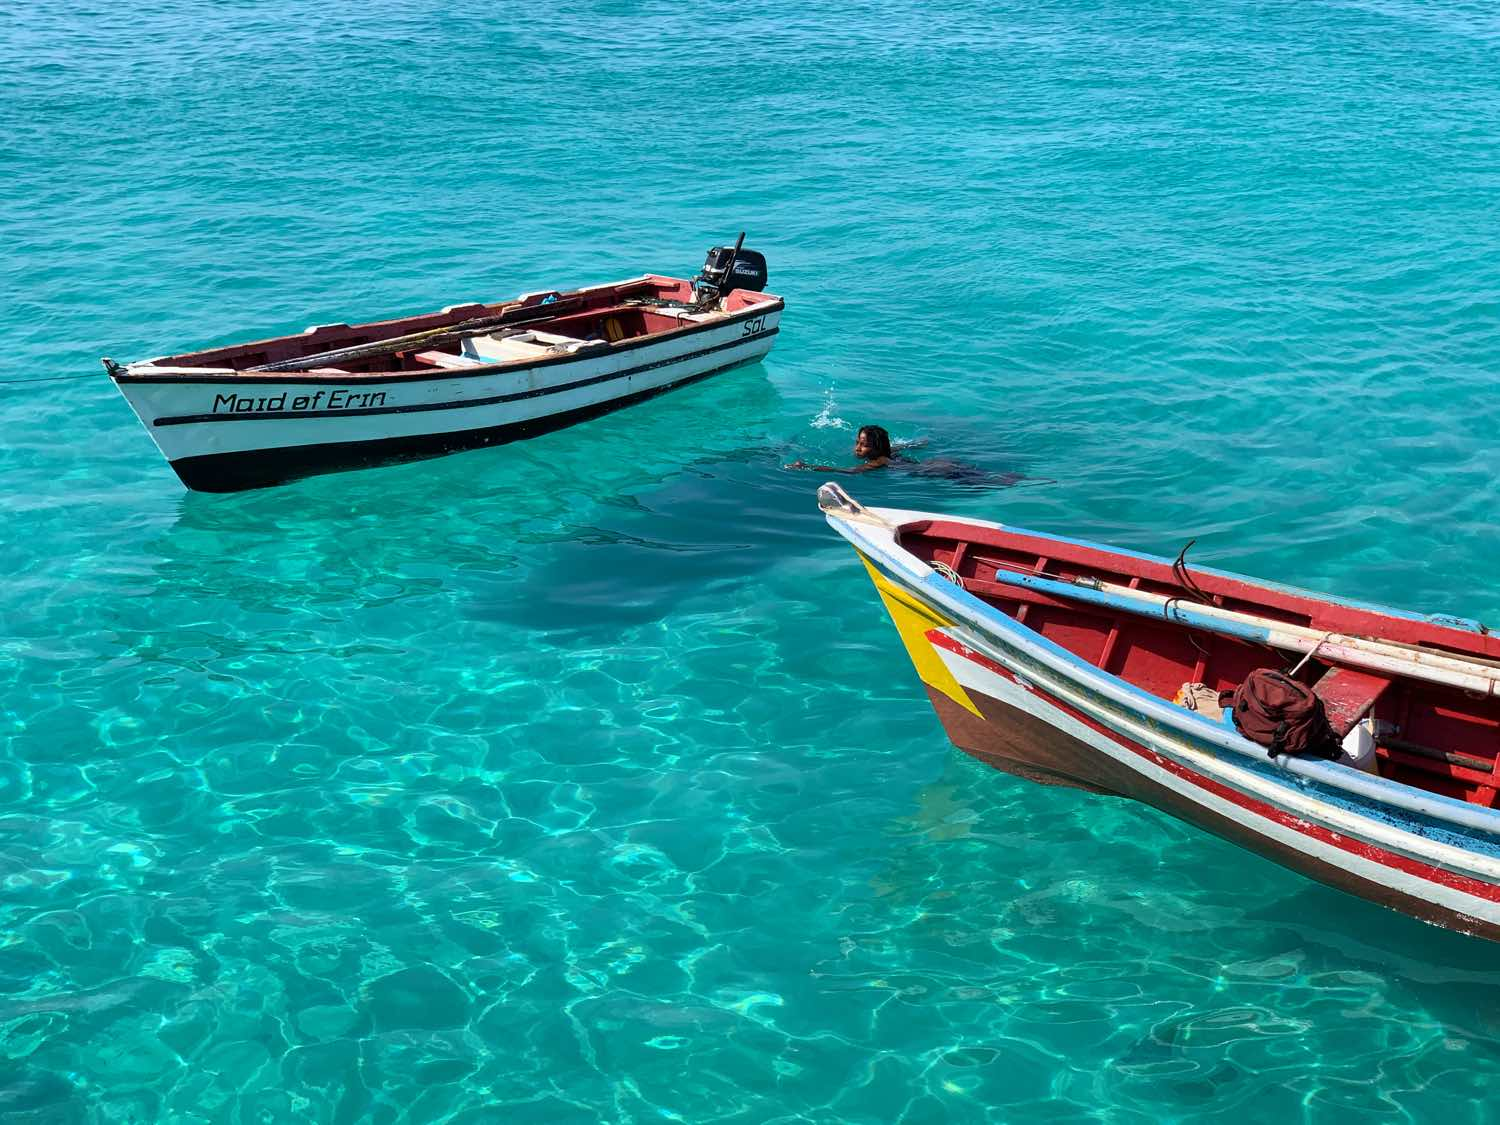 sal cape verde boats water